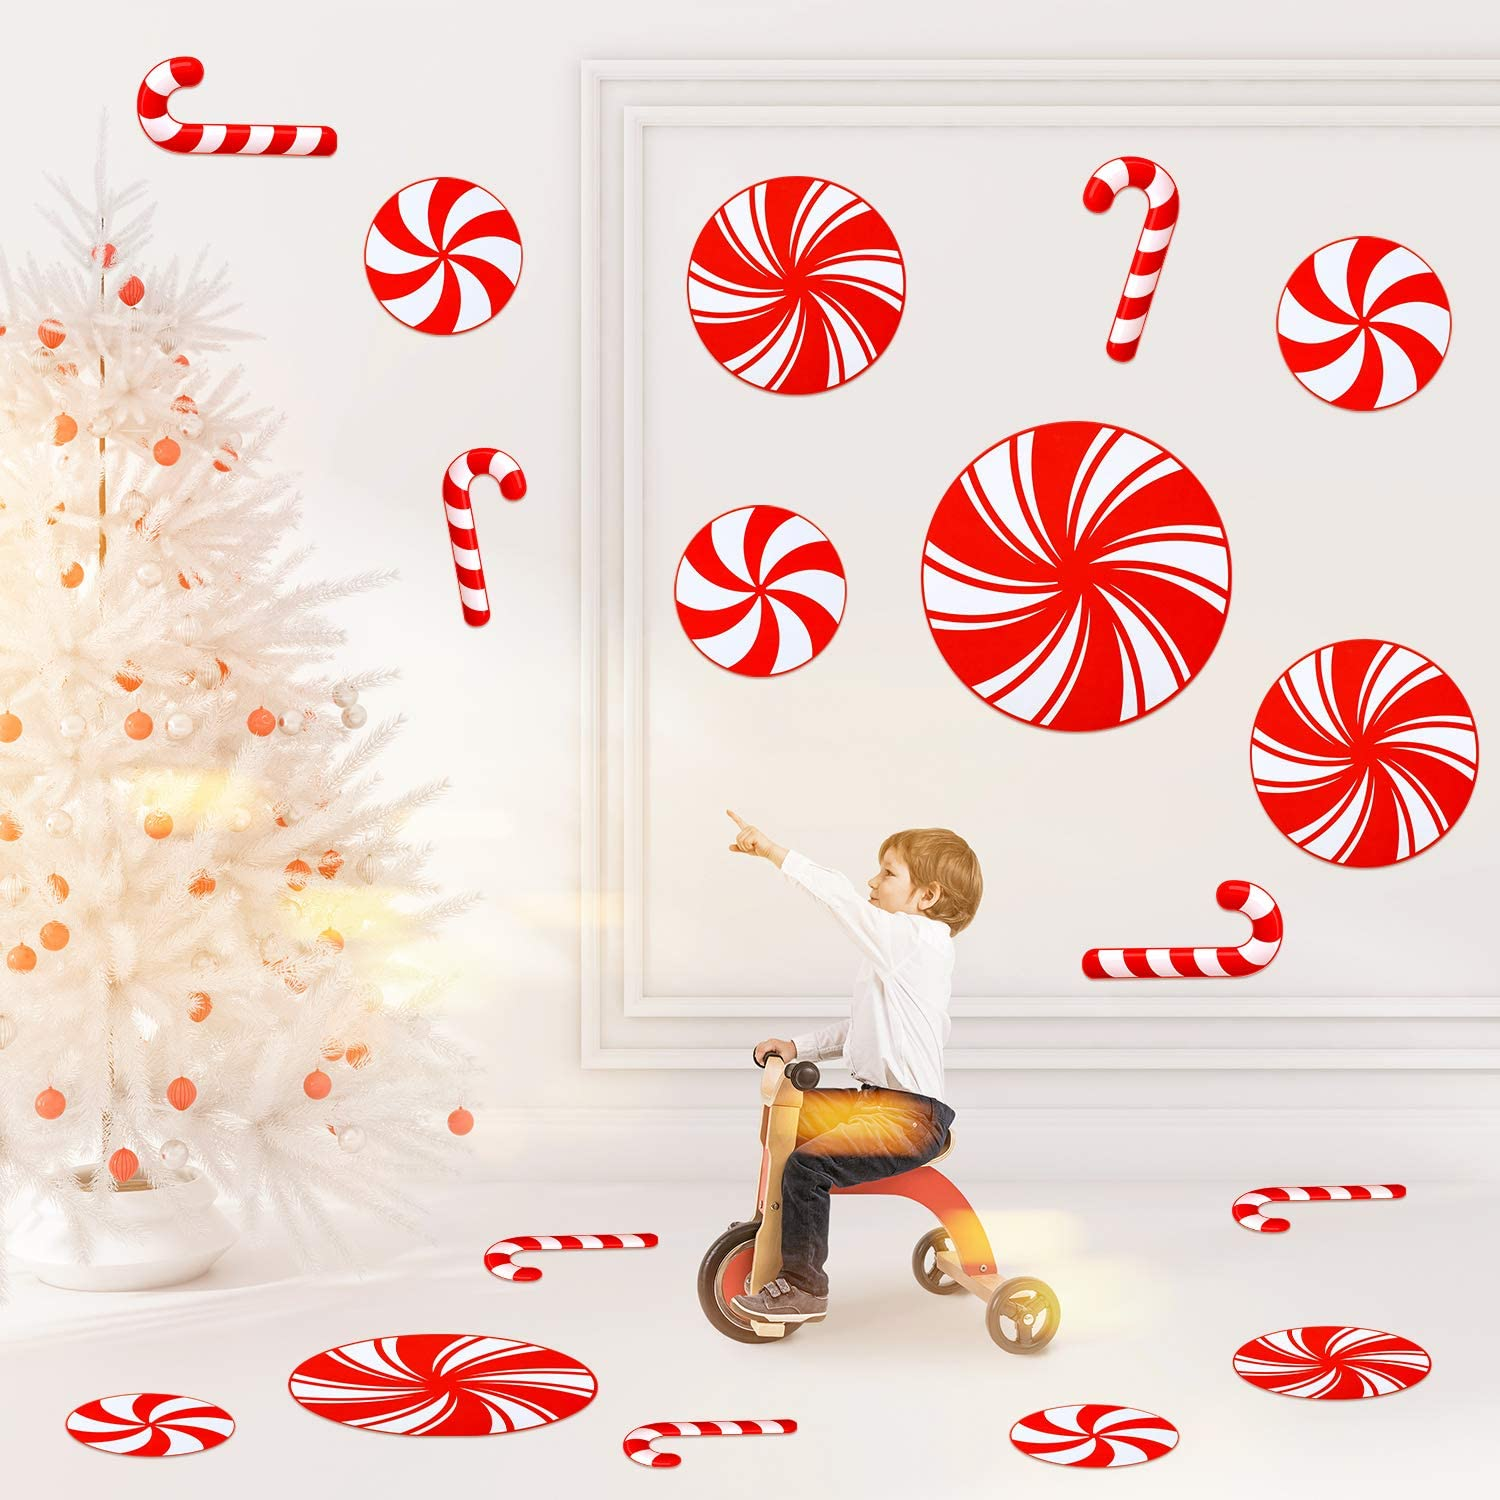 Gejoy 16 Pieces Peppermint Floor Decals Stickers and Christmas Candy Canes Floor Decals Stickers for Christmas Candy Party Winter Holiday Decoration Supplies, Red and White